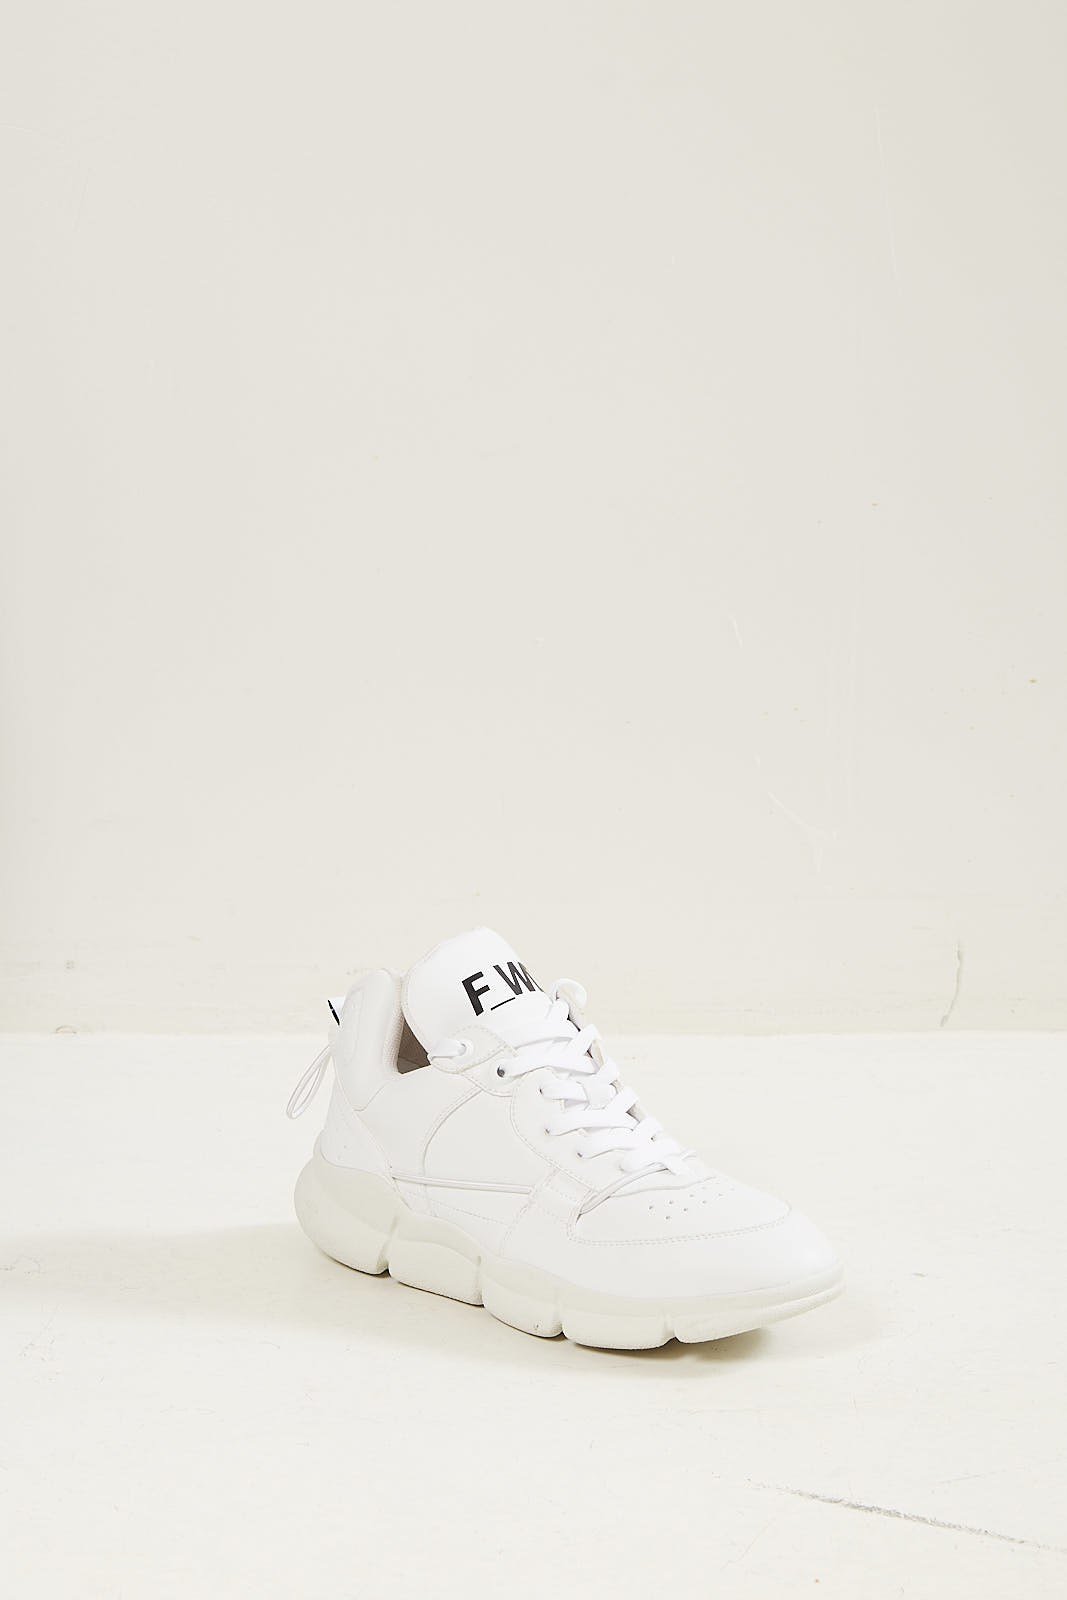 F_WD Econappa sneakers